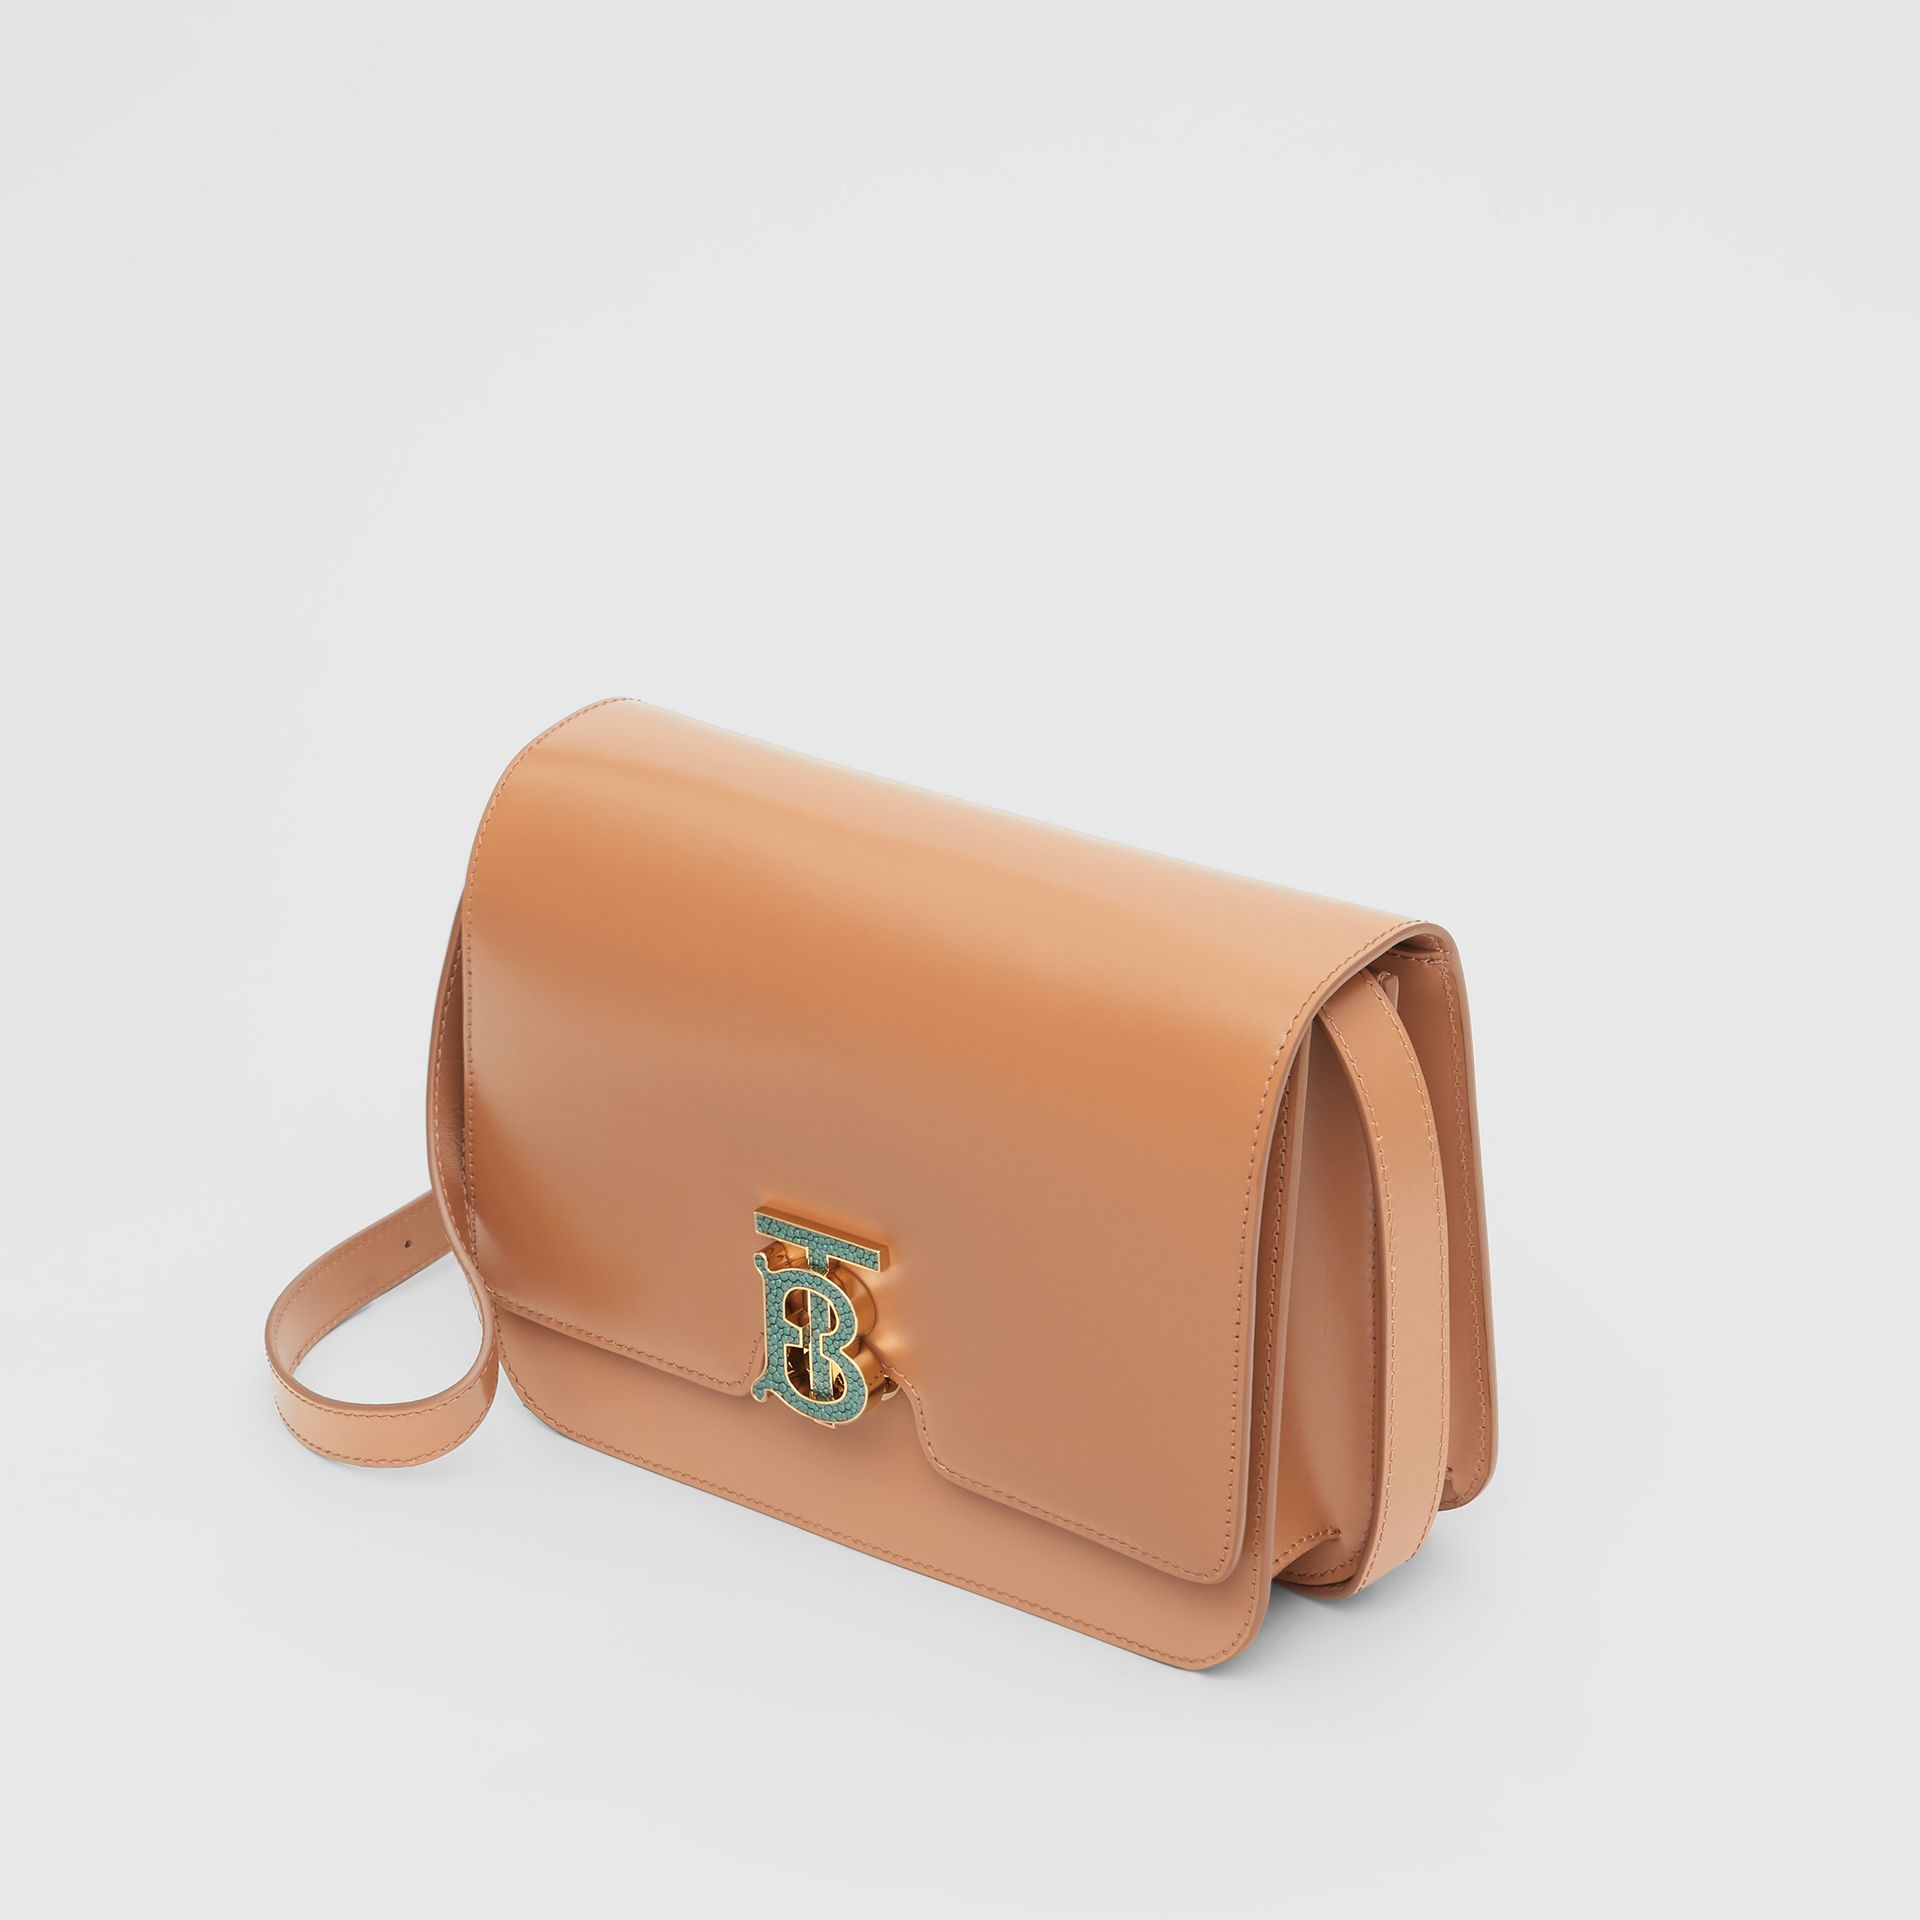 Medium Leather TB Bag in Flaxseed - Women | Burberry - gallery image 3